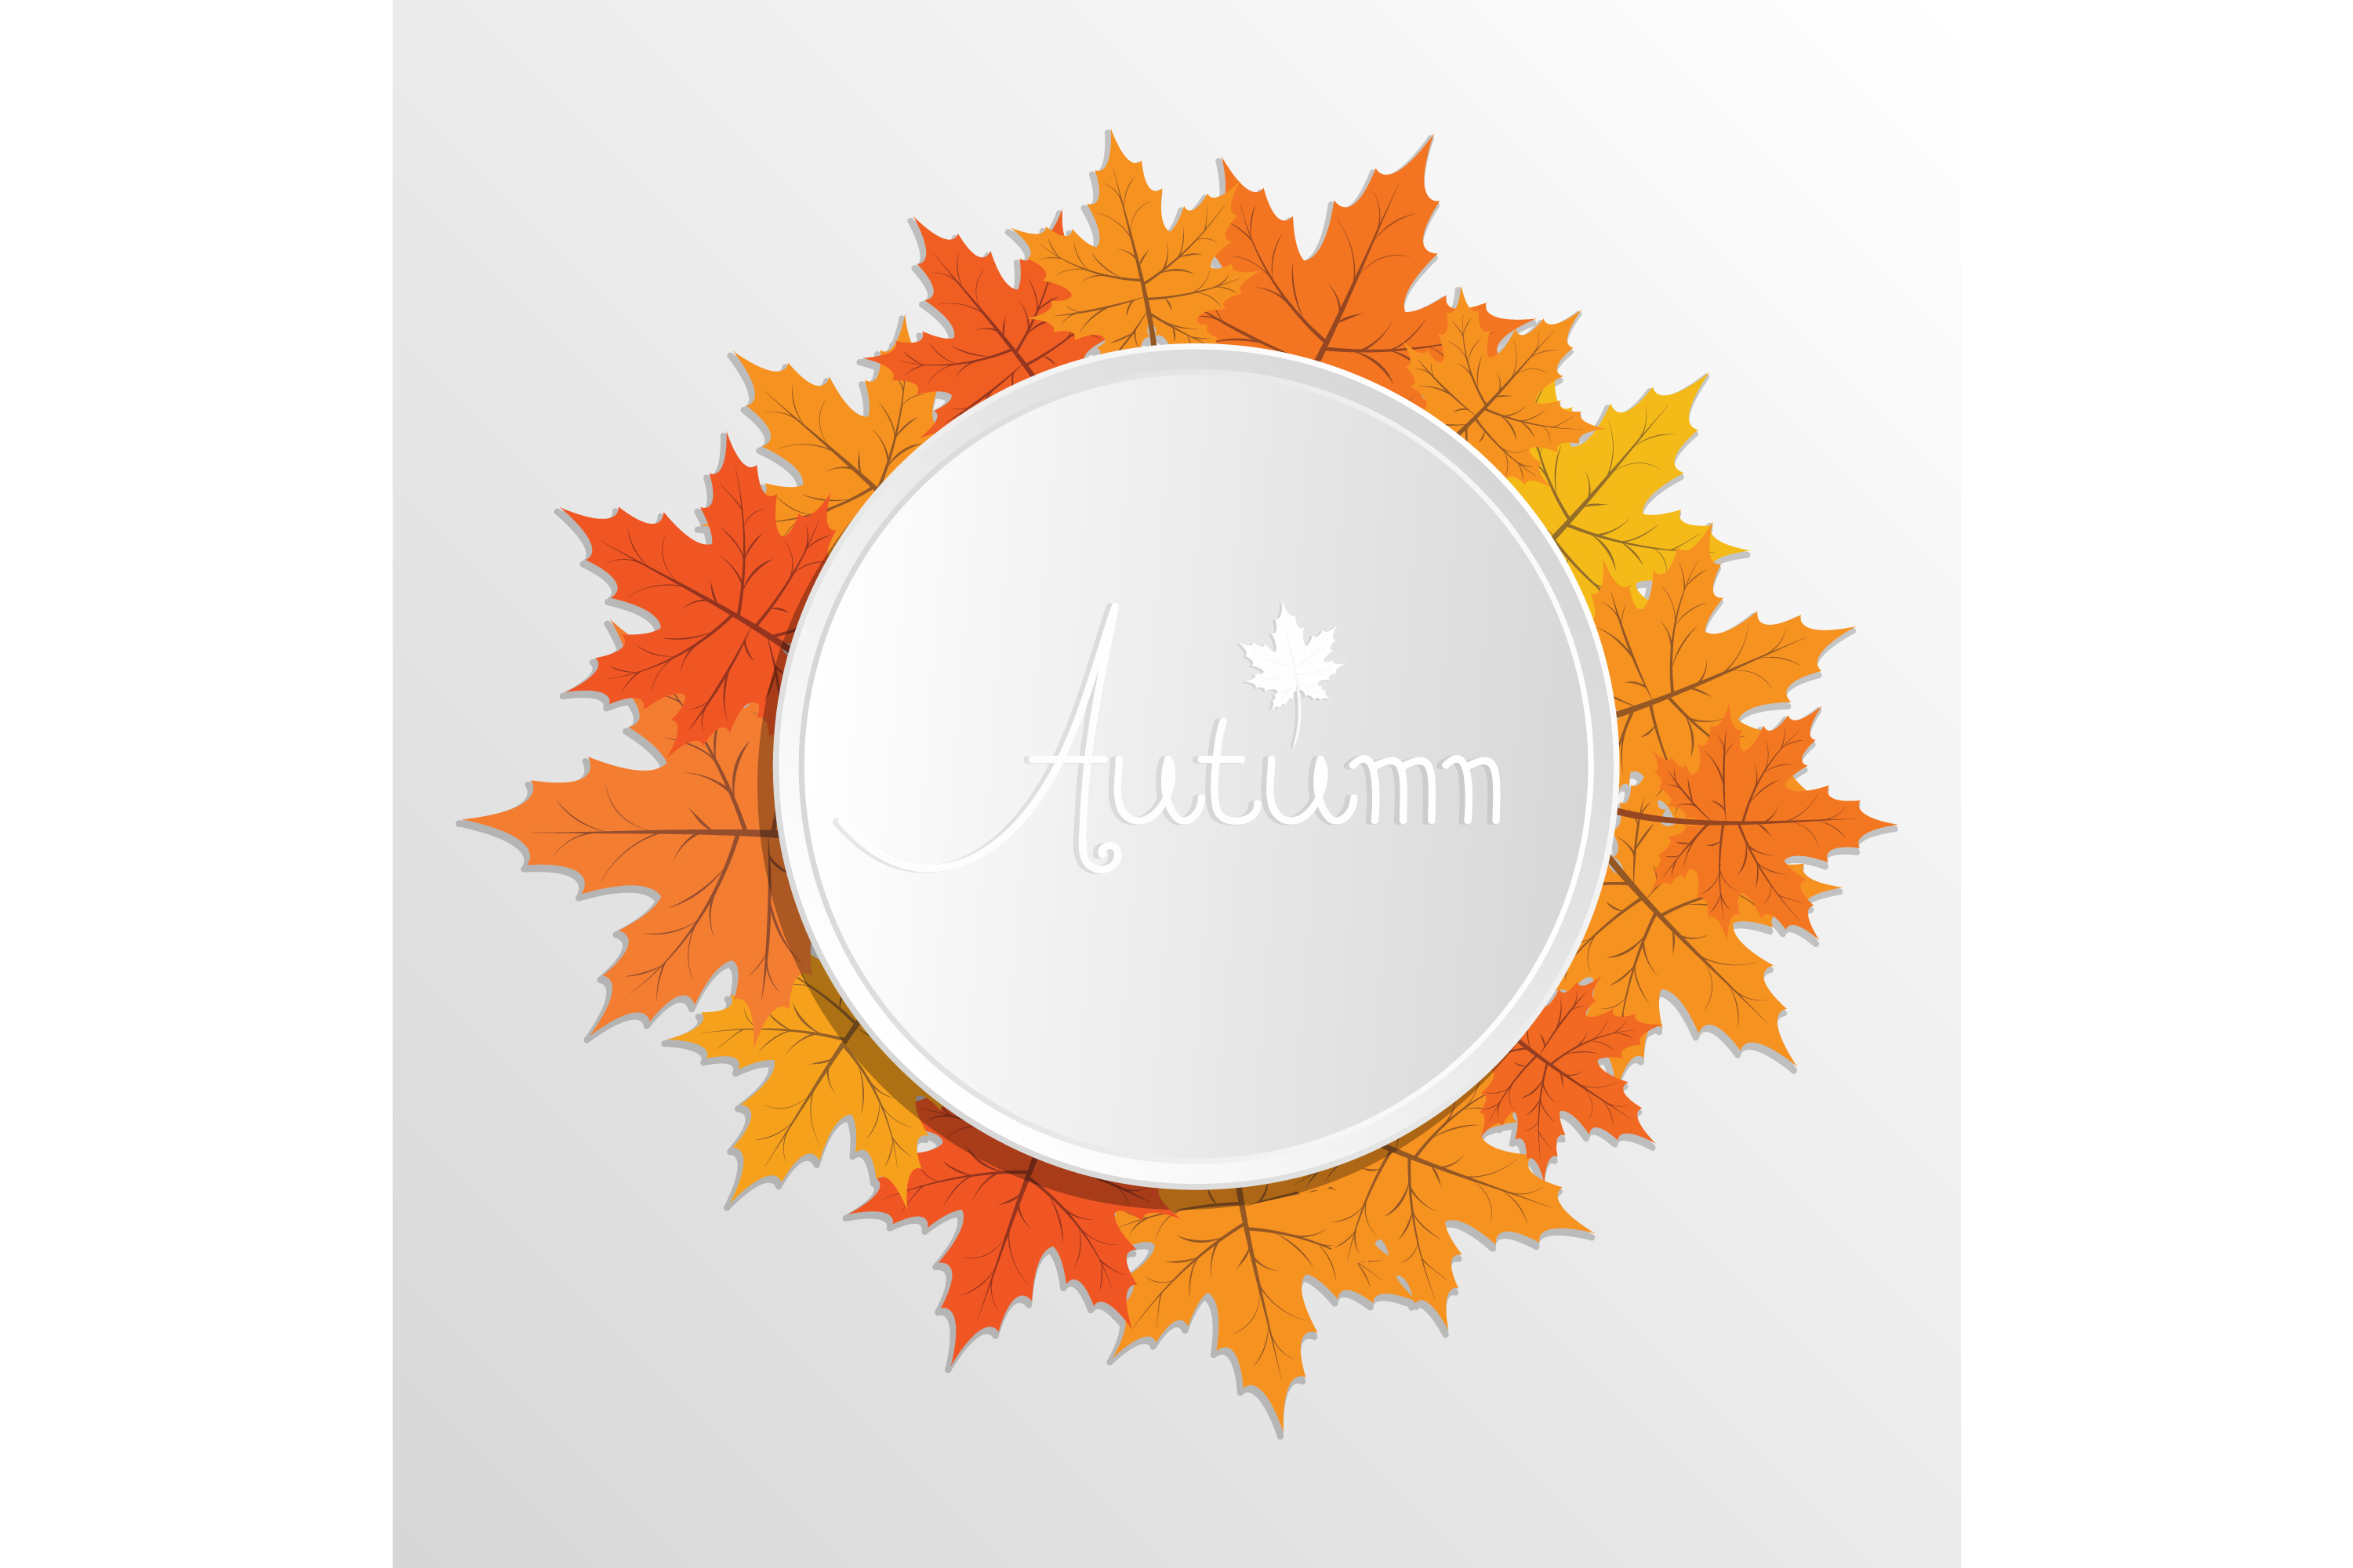 Download Free Autumn Decoration Template Graphic By Sabavector Creative Fabrica for Cricut Explore, Silhouette and other cutting machines.